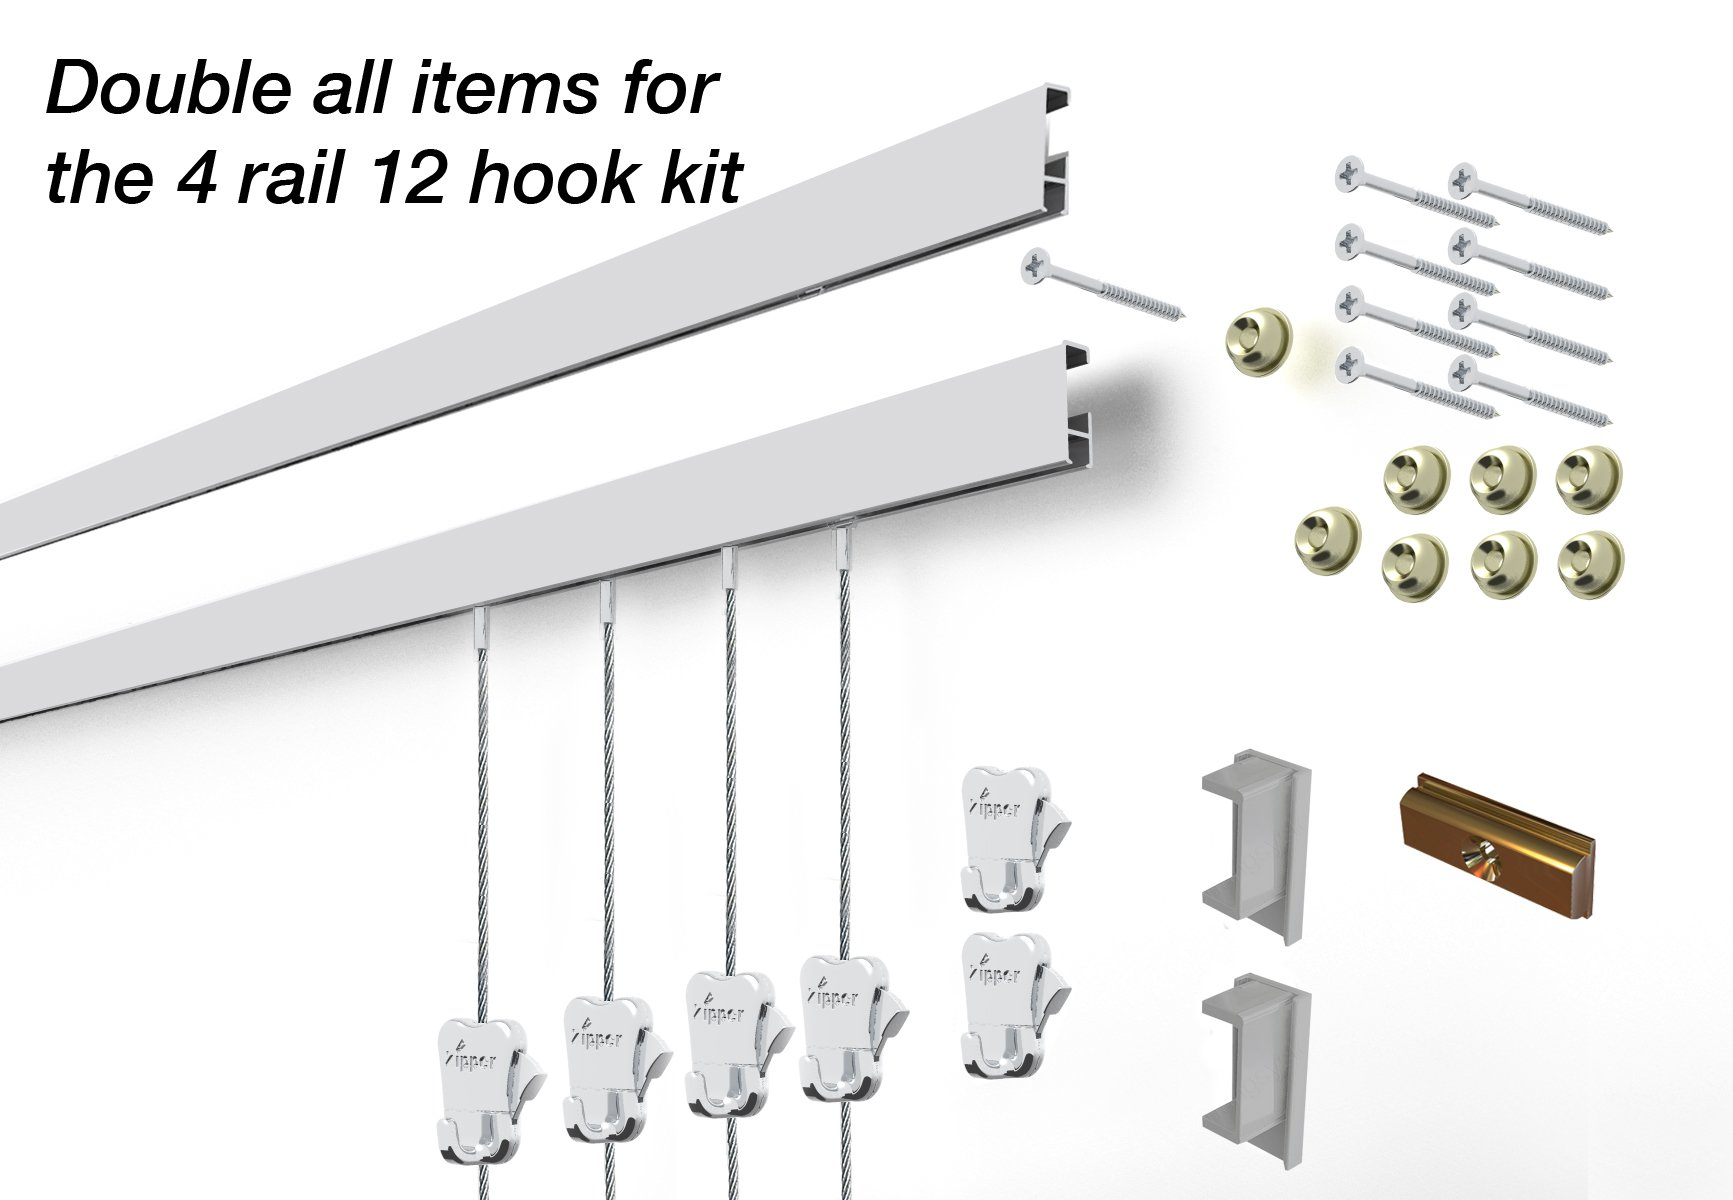 STAS Cliprail Complete Art Hanging Gallery System (4 rails 12 hooks and 8 cables, Matte Silver)